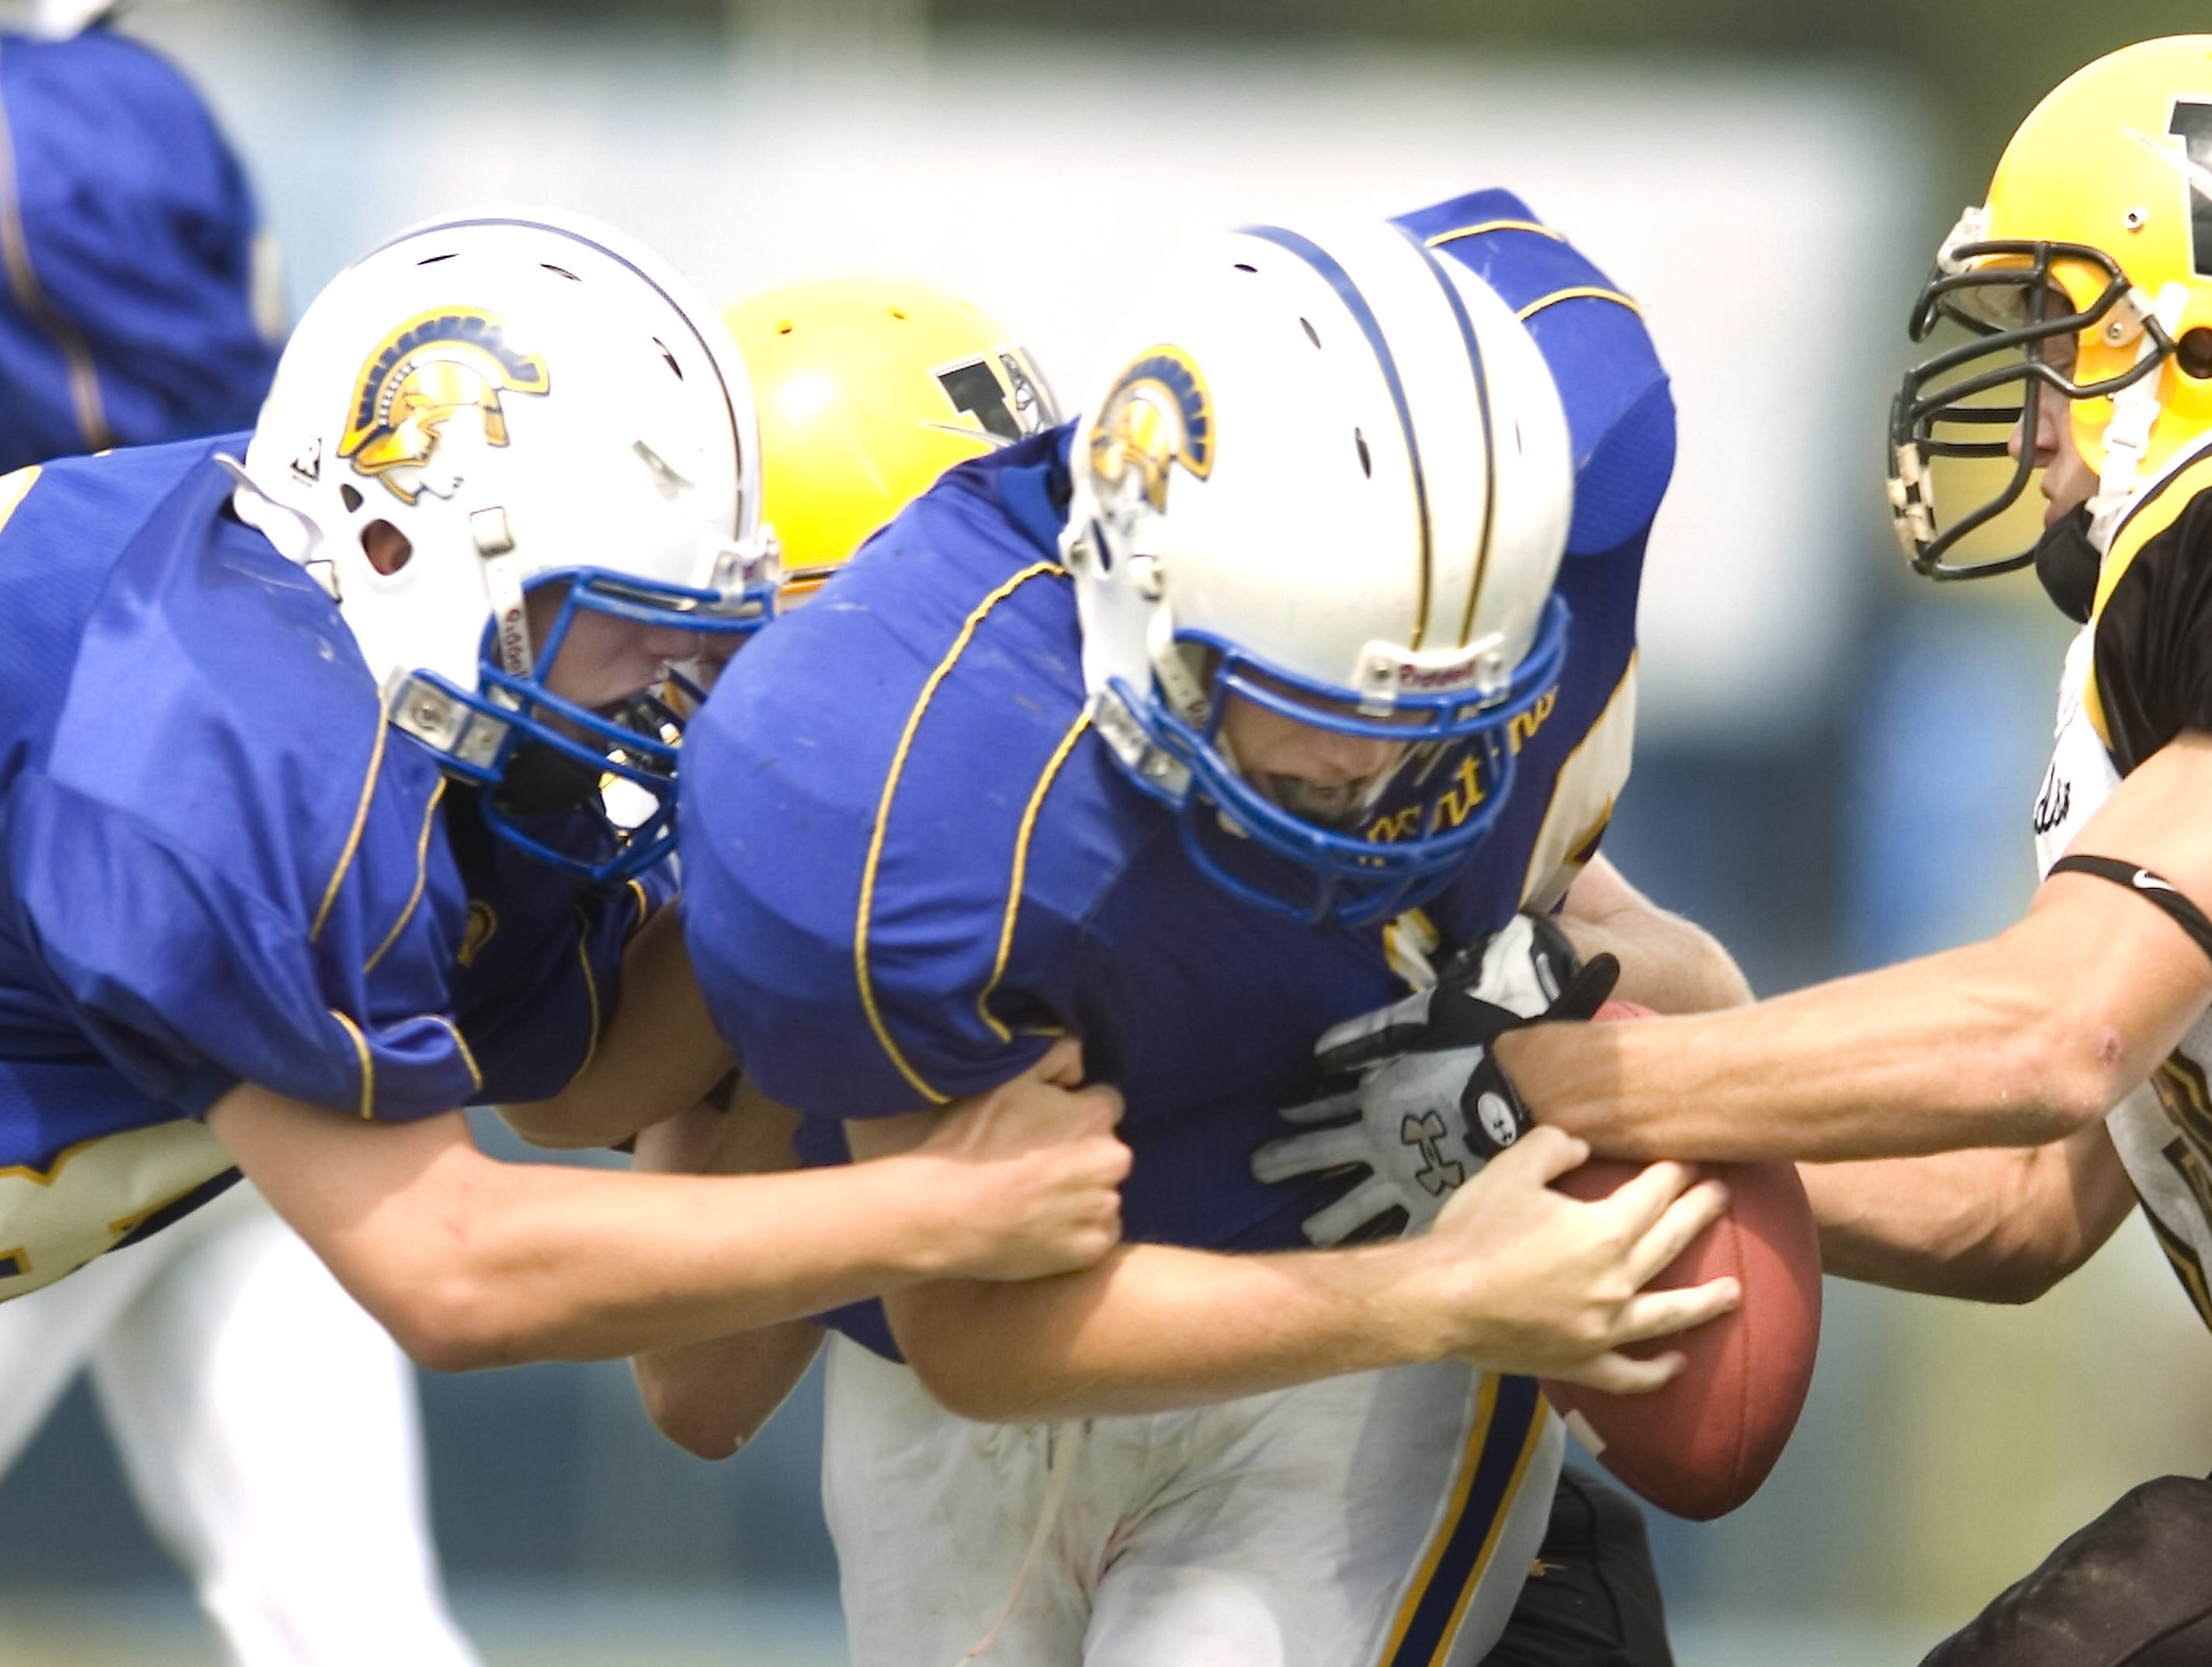 From 2007: Adam Rosenbarker, left, of Maine-Endwell with no help to his teammate Nathan Reynolds as Josh Quinn of Windsor strips the football away in the first quarter at Maine-Endwell High School on Saturday.